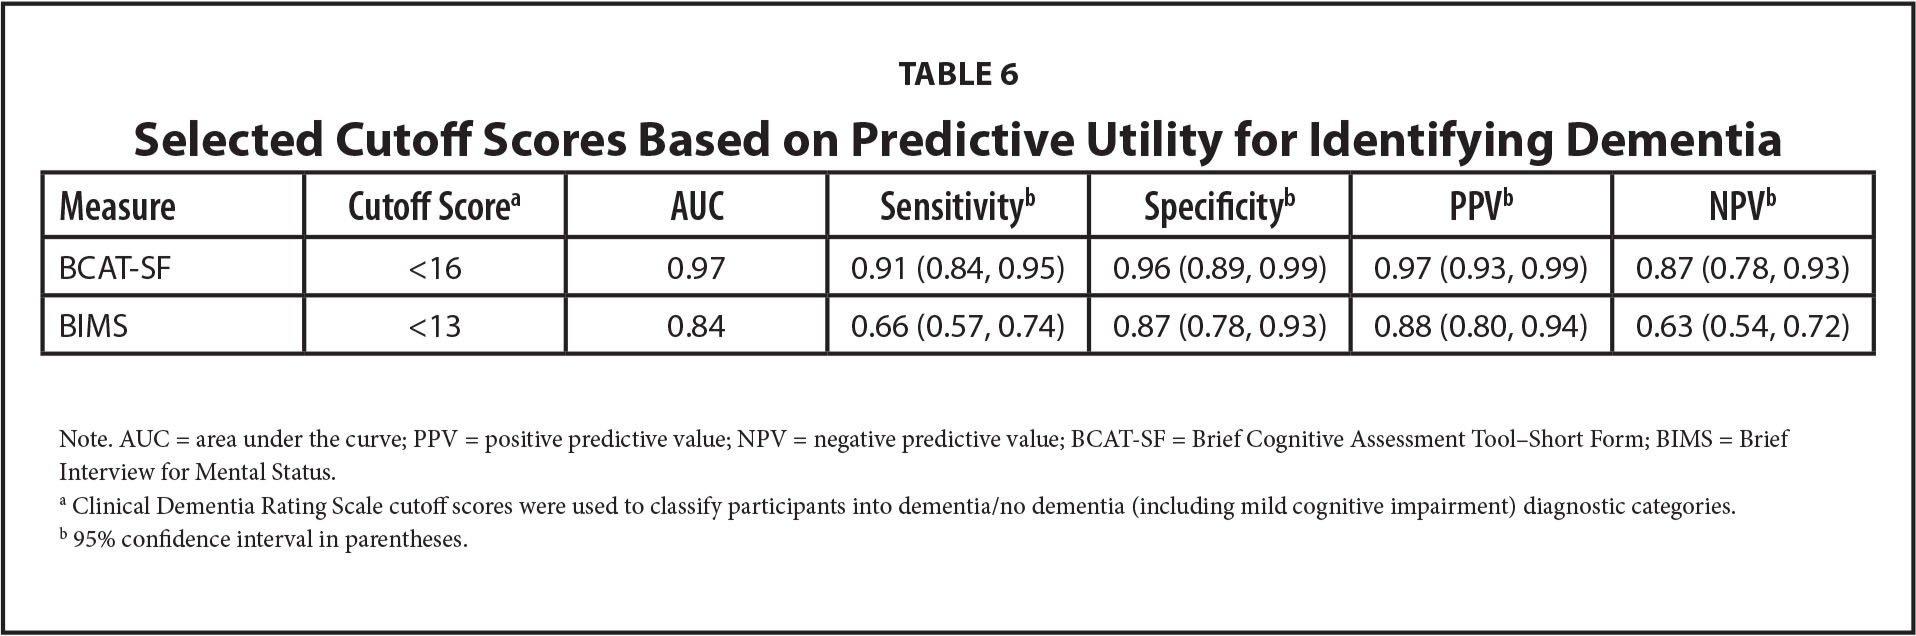 Selected Cutoff Scores Based on Predictive Utility for Identifying Dementia